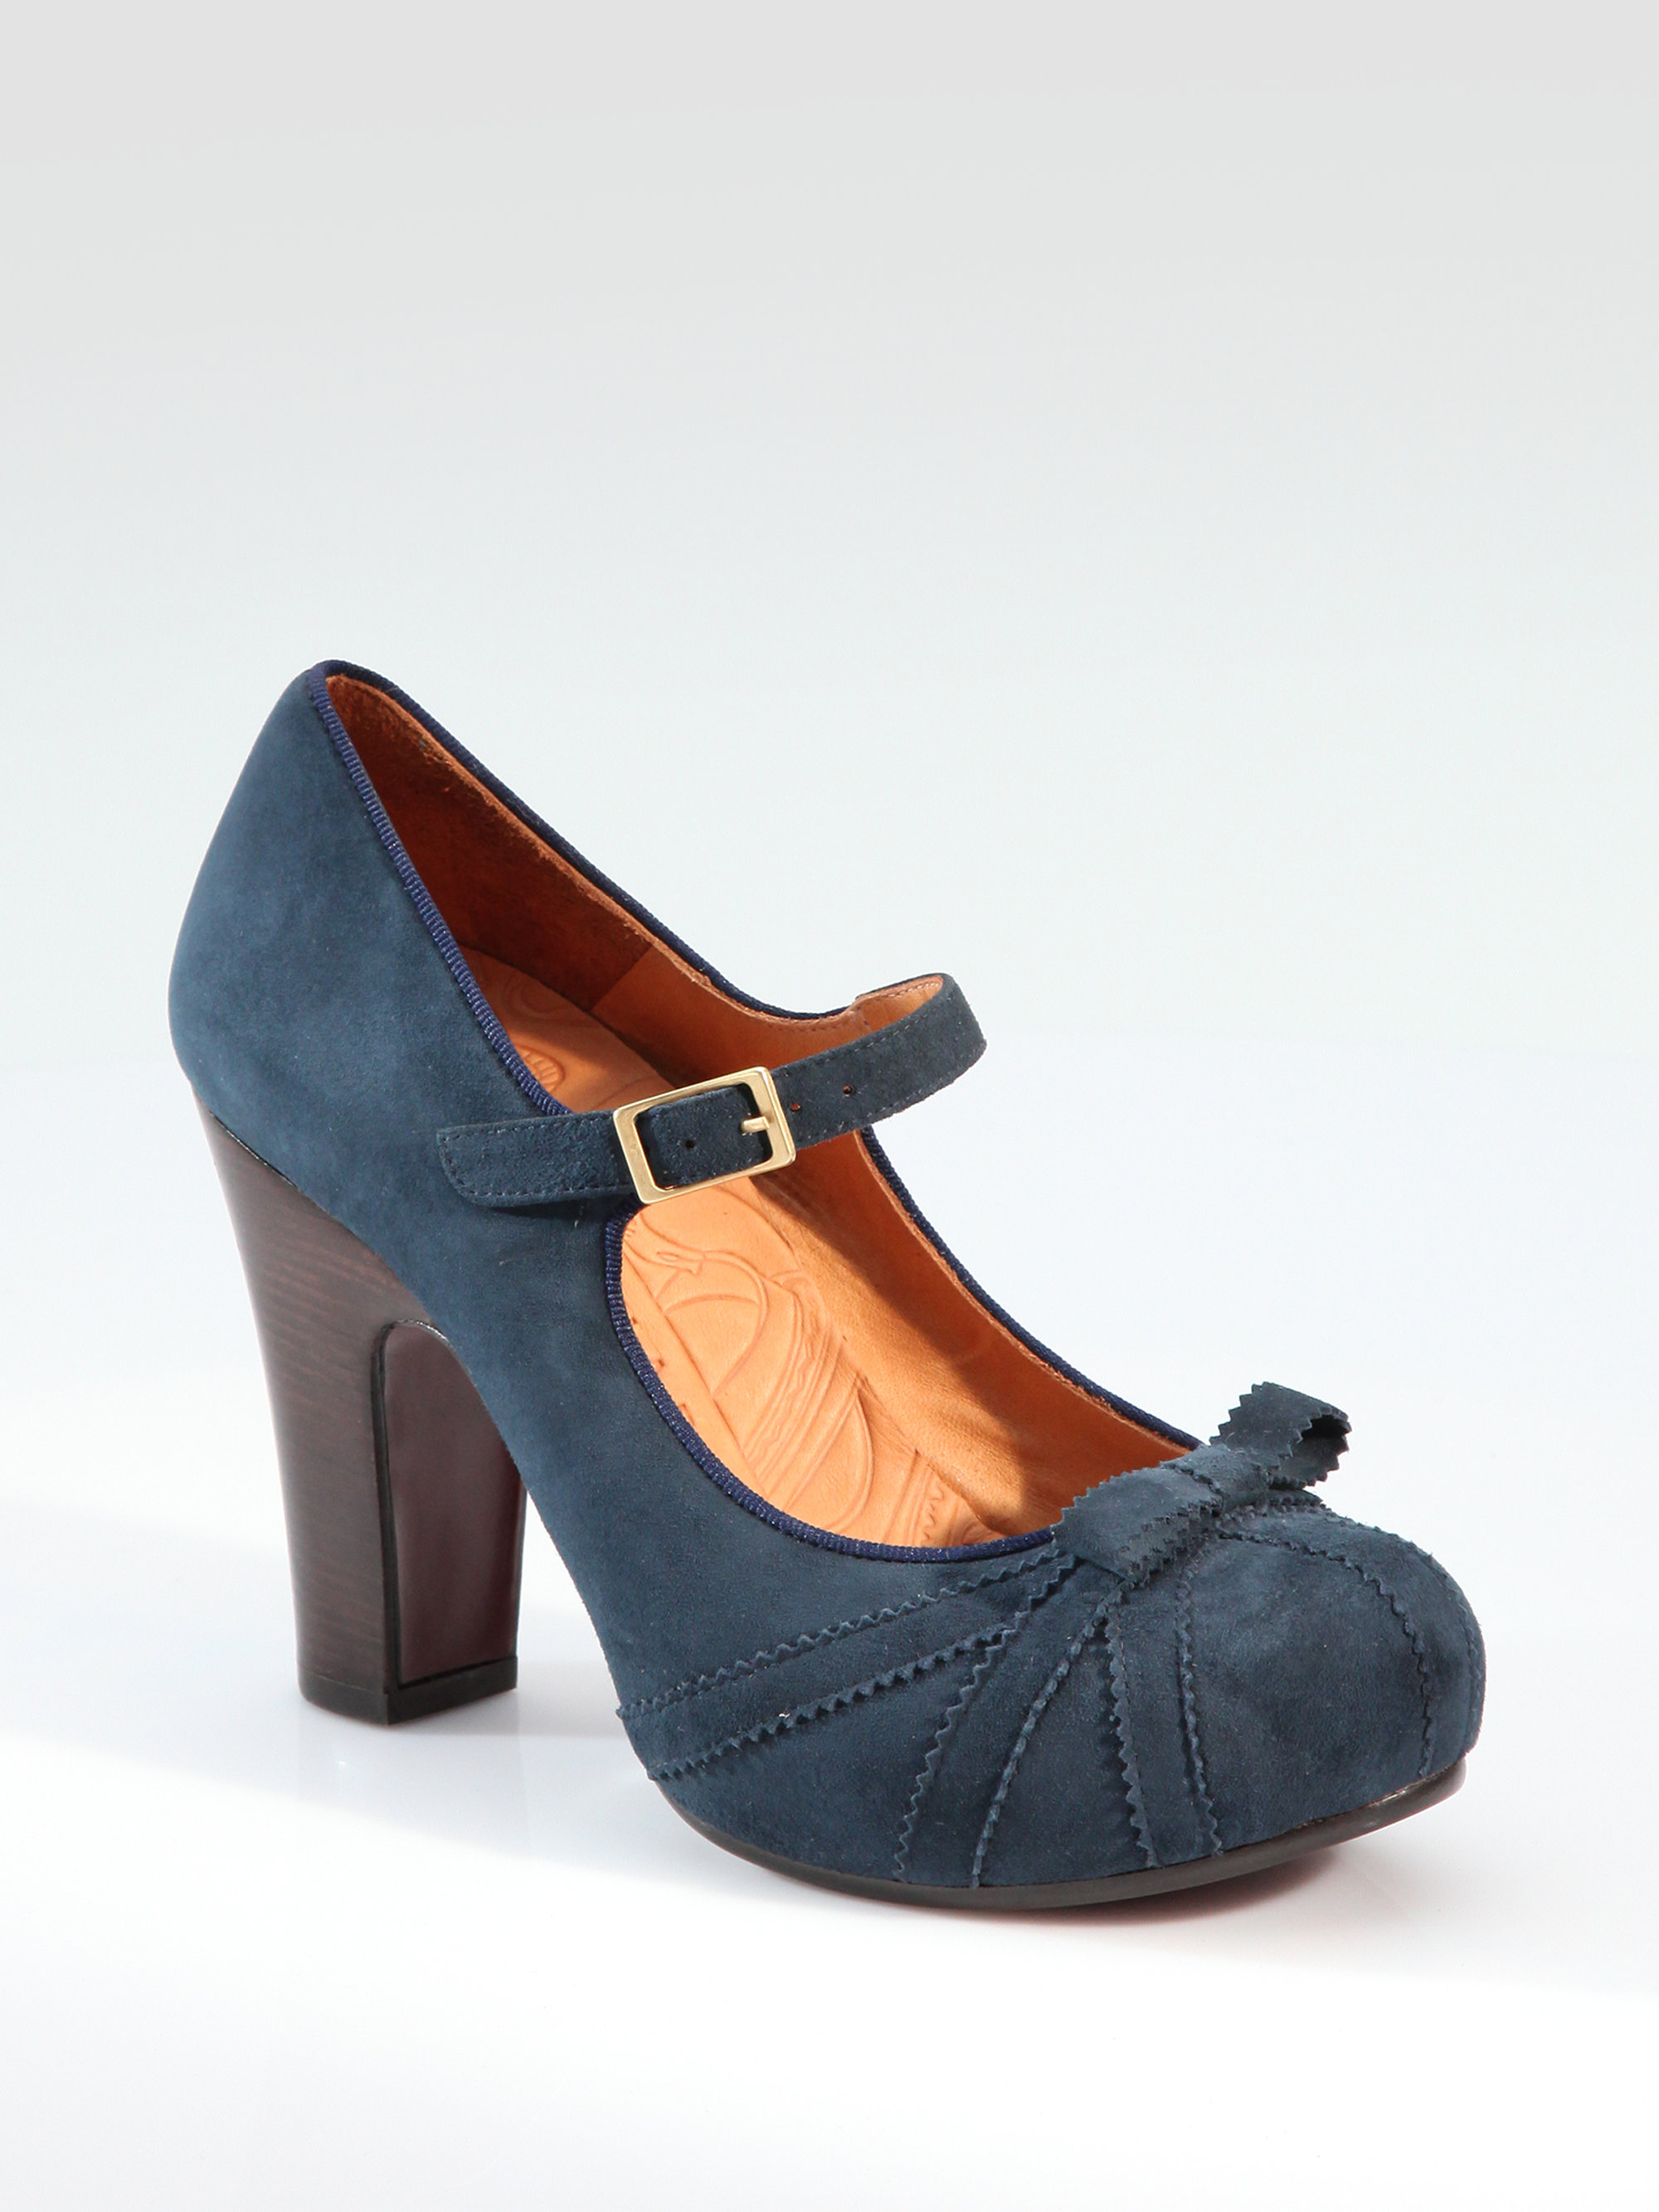 Chie mihara Suede Mary Jane Pumps in Blue | Lyst